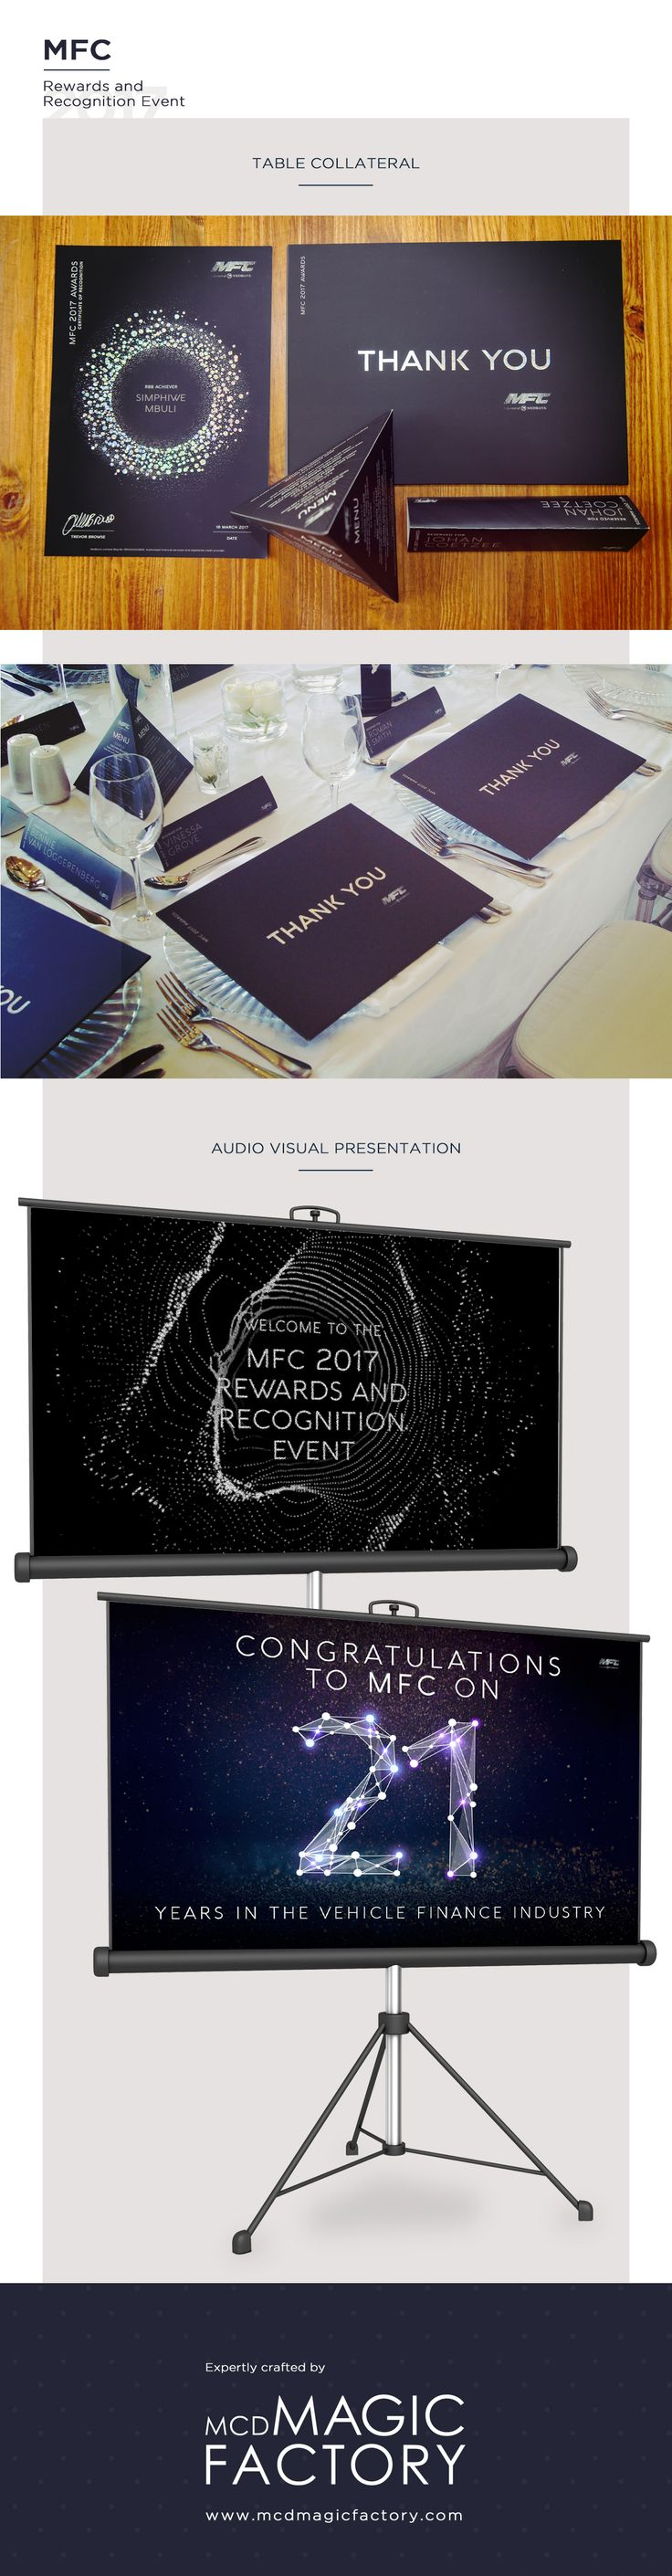 Client: MFC, a division of Nedbank | Year: 2017 | Design and production of print and audiovisual elements for MFC's recognition event for their staff. This included certificates and a presentation.